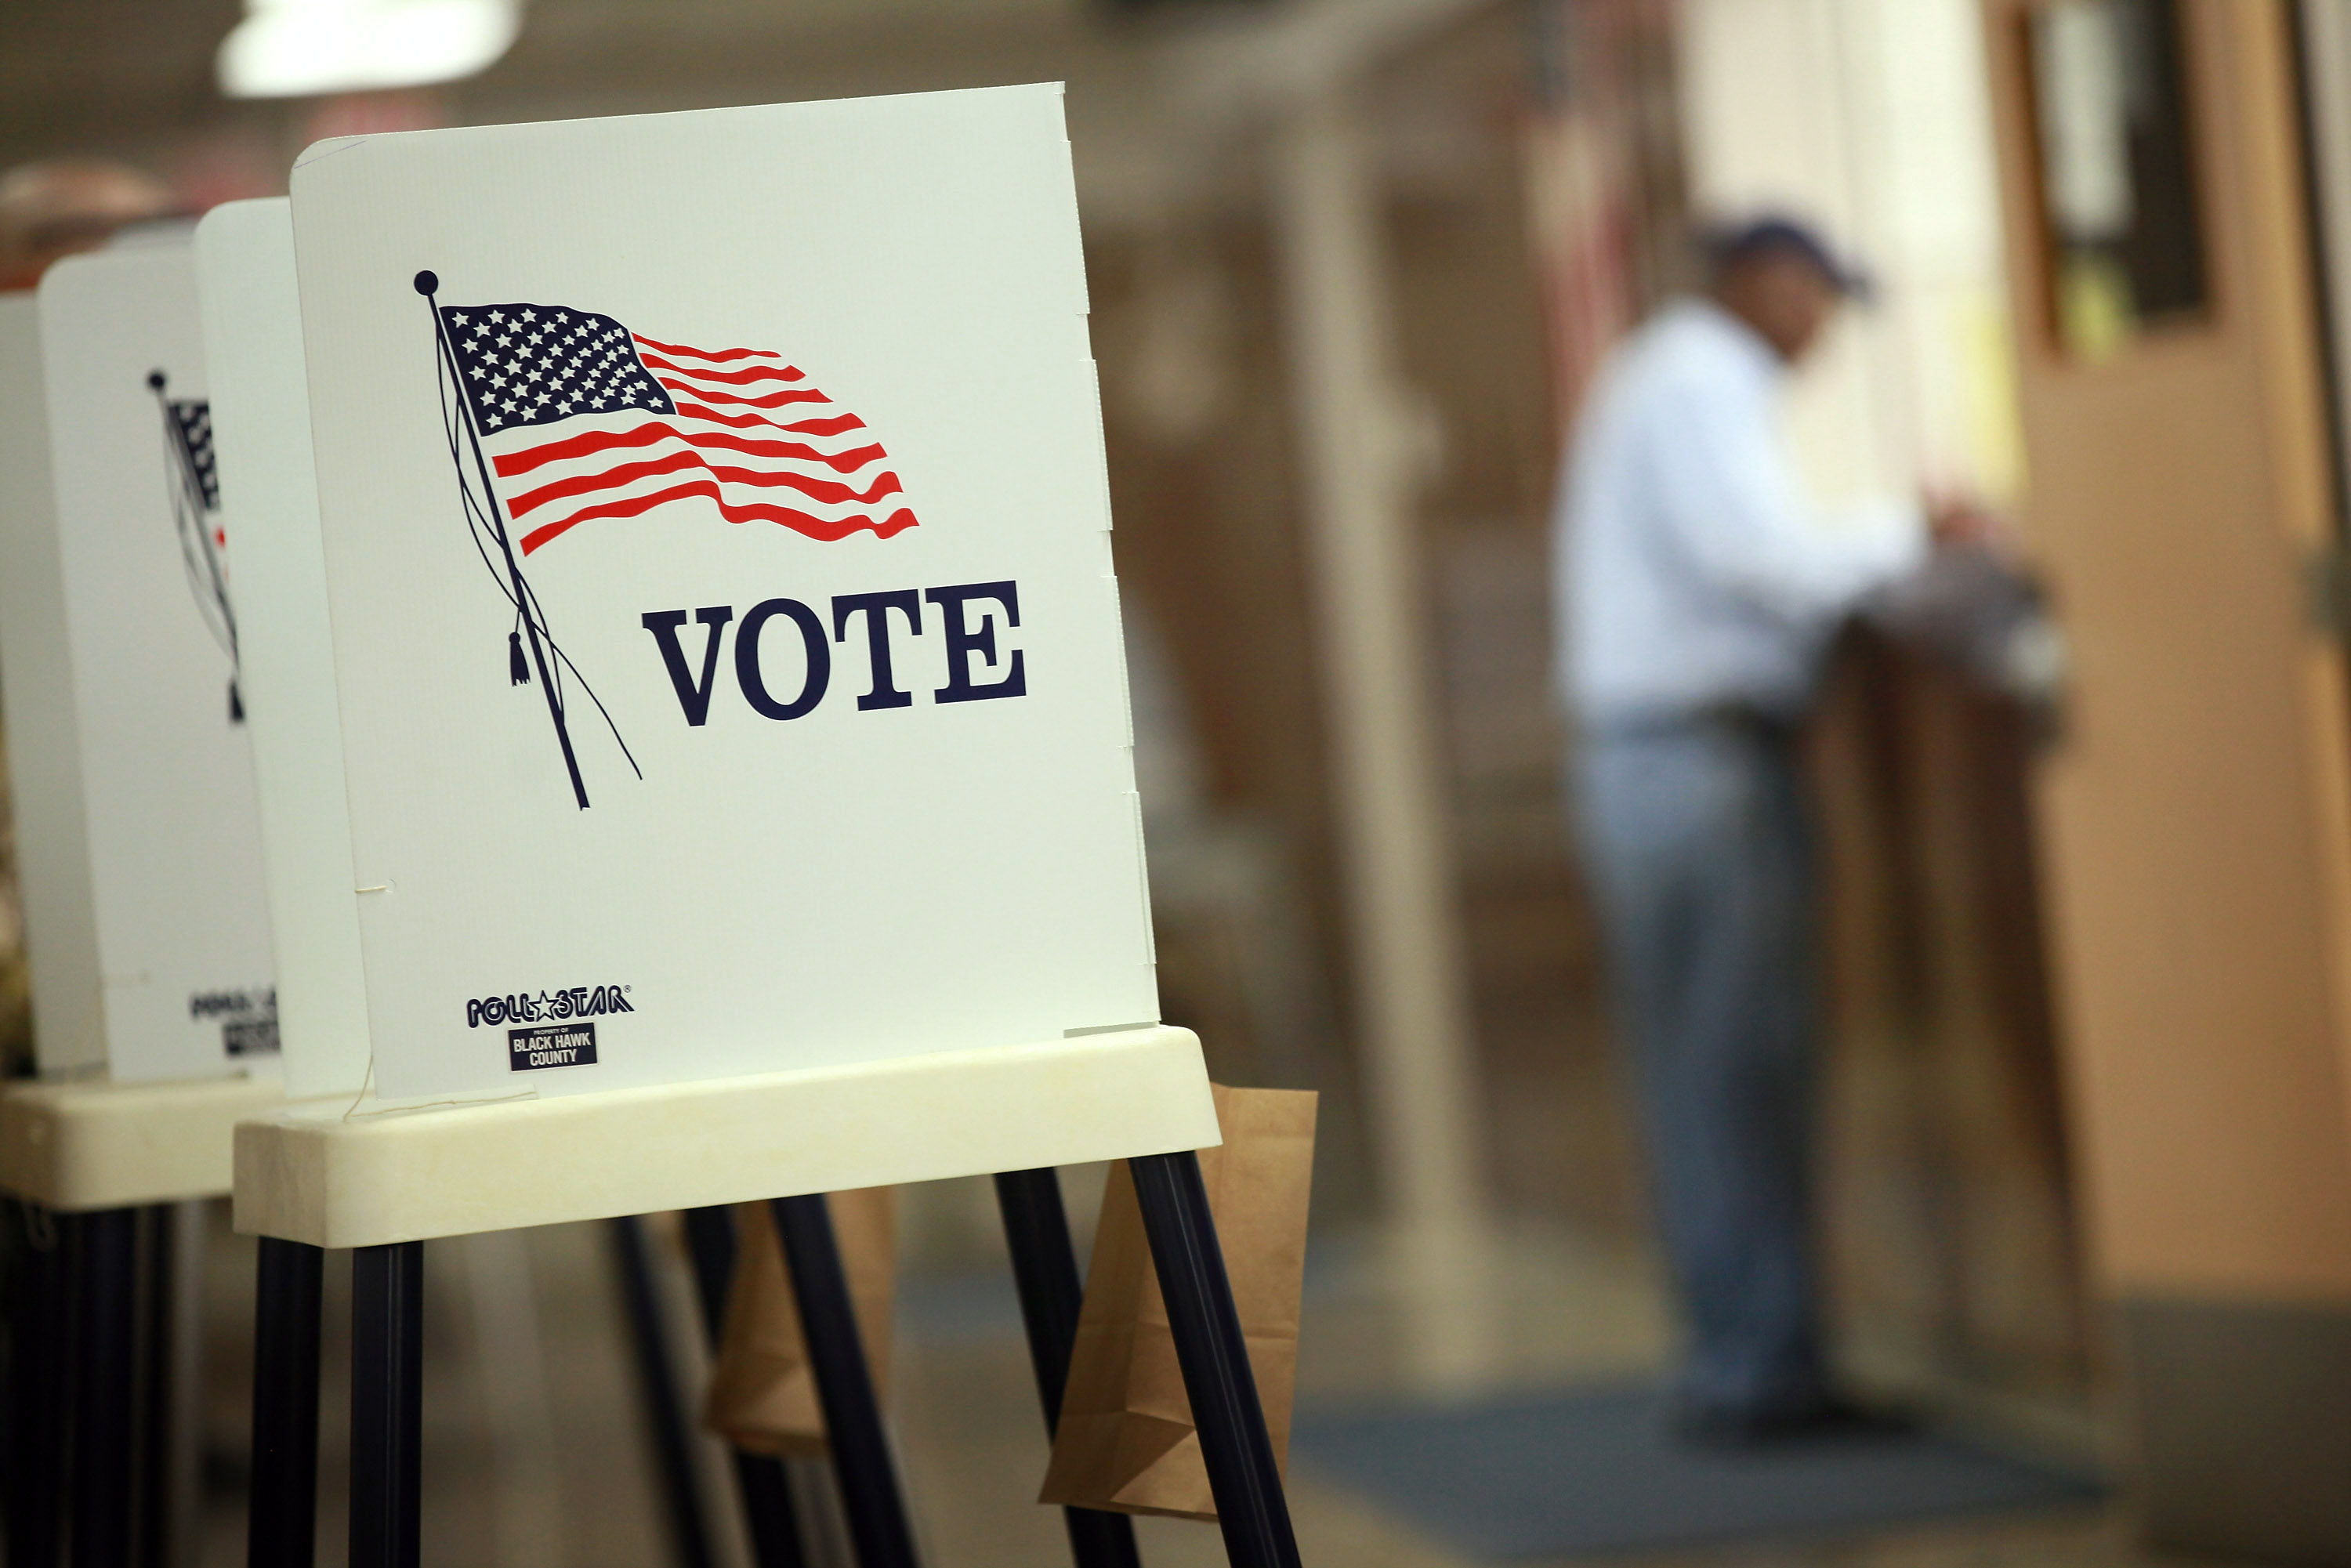 Voting booths are set up for early voting at the Black Hawk County Courthouse on September 27, 2012 in Waterloo, Iowa.